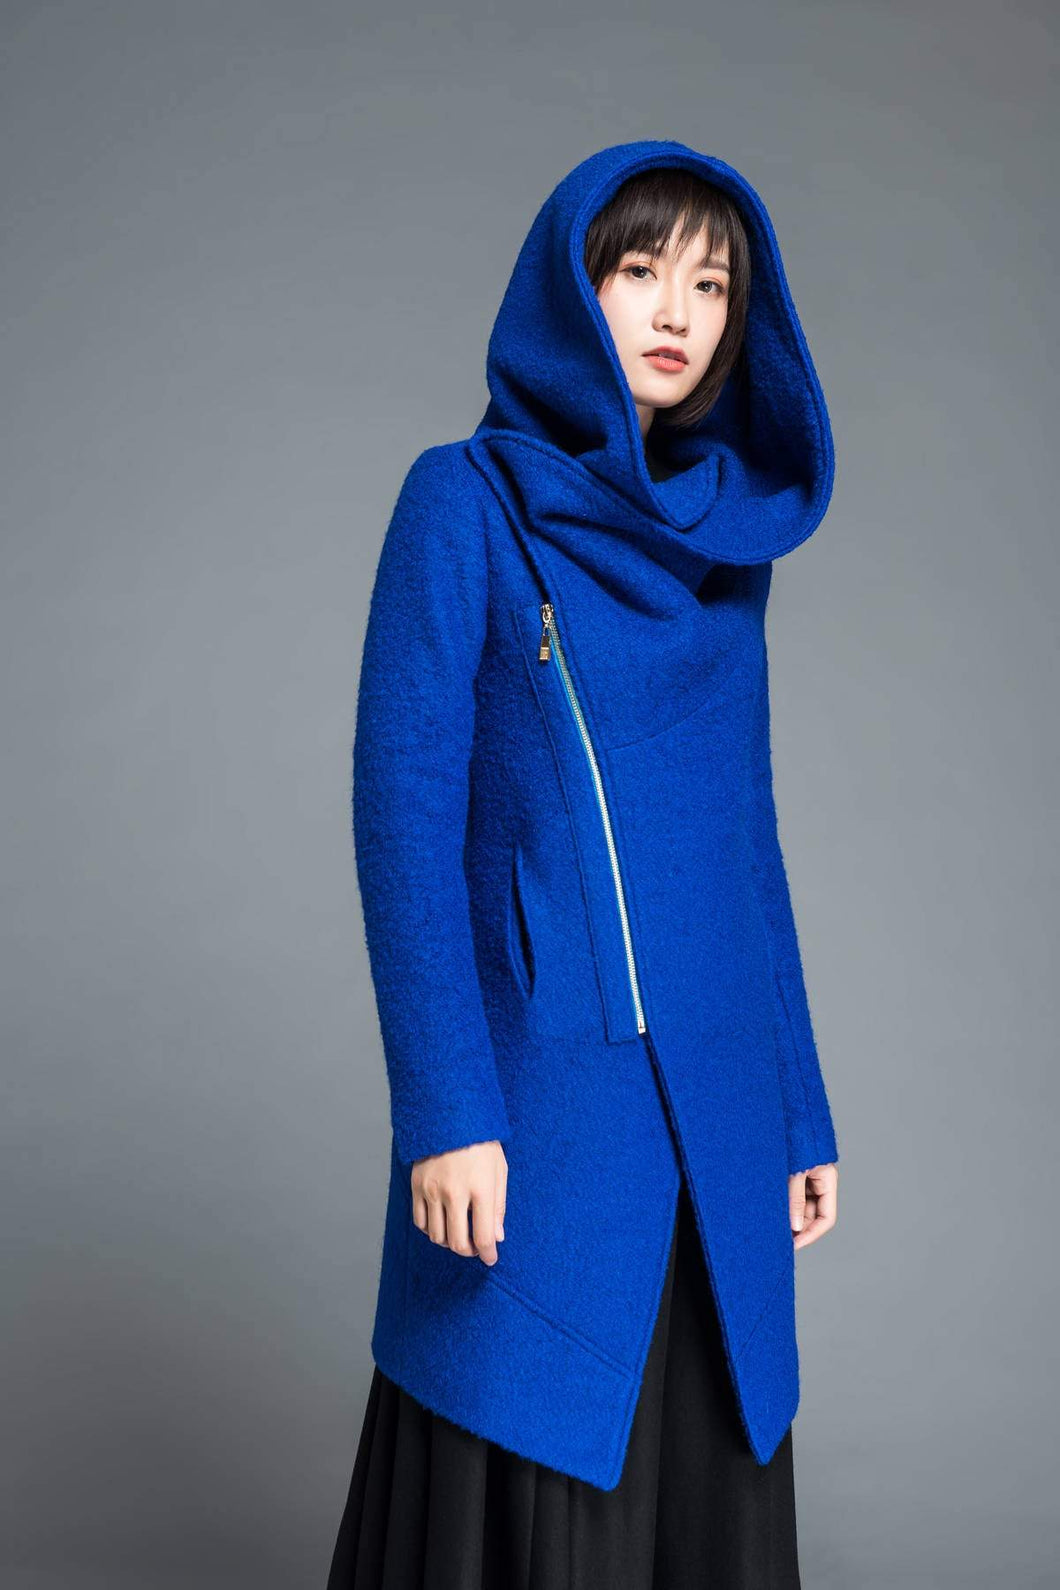 Womens coat, wool coat, blue coat, winter coat, asymmetrical coat, hoody coat, cowl neck coat, plus size coat, winter wool coat C1212